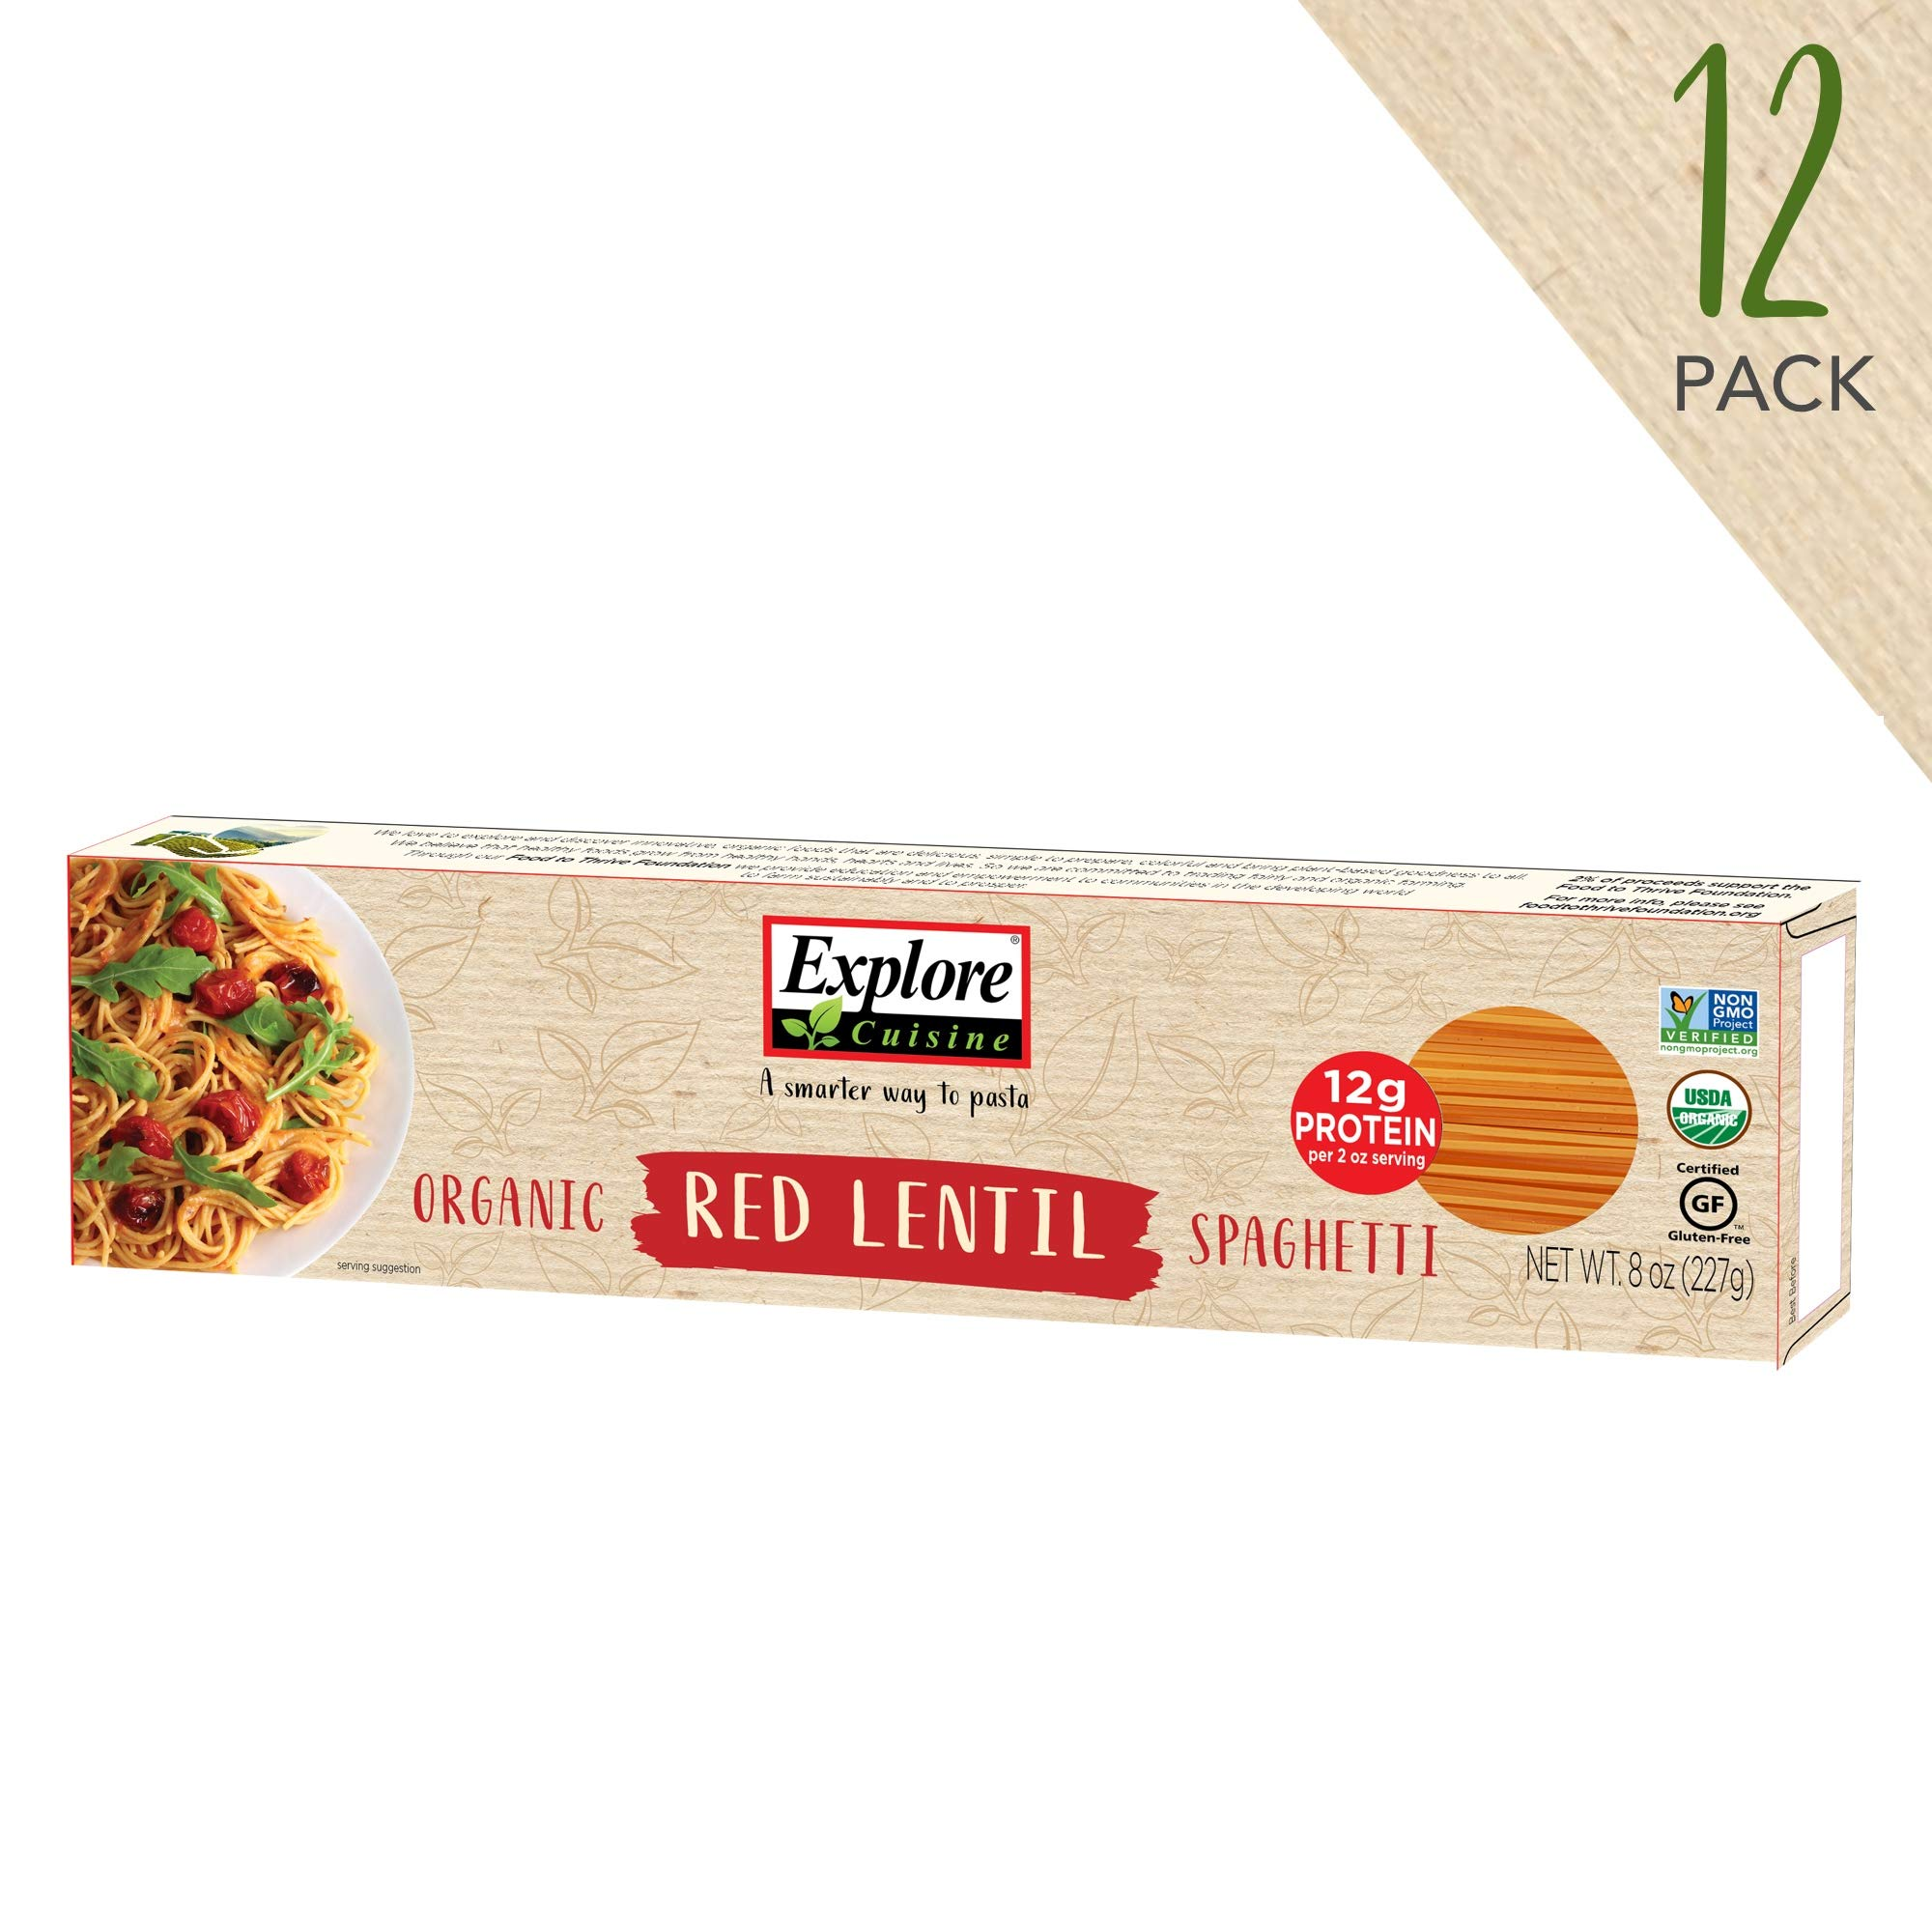 Explore Cuisine Organic Red Lentil Spaghetti (12 Pack) - 8 oz -High Protein, Gluten Free Pasta, Easy to Make - USDA Certified Organic, Vegan, Kosher, Non GMO - 48 Total Servings by EXPLORE CUISINE